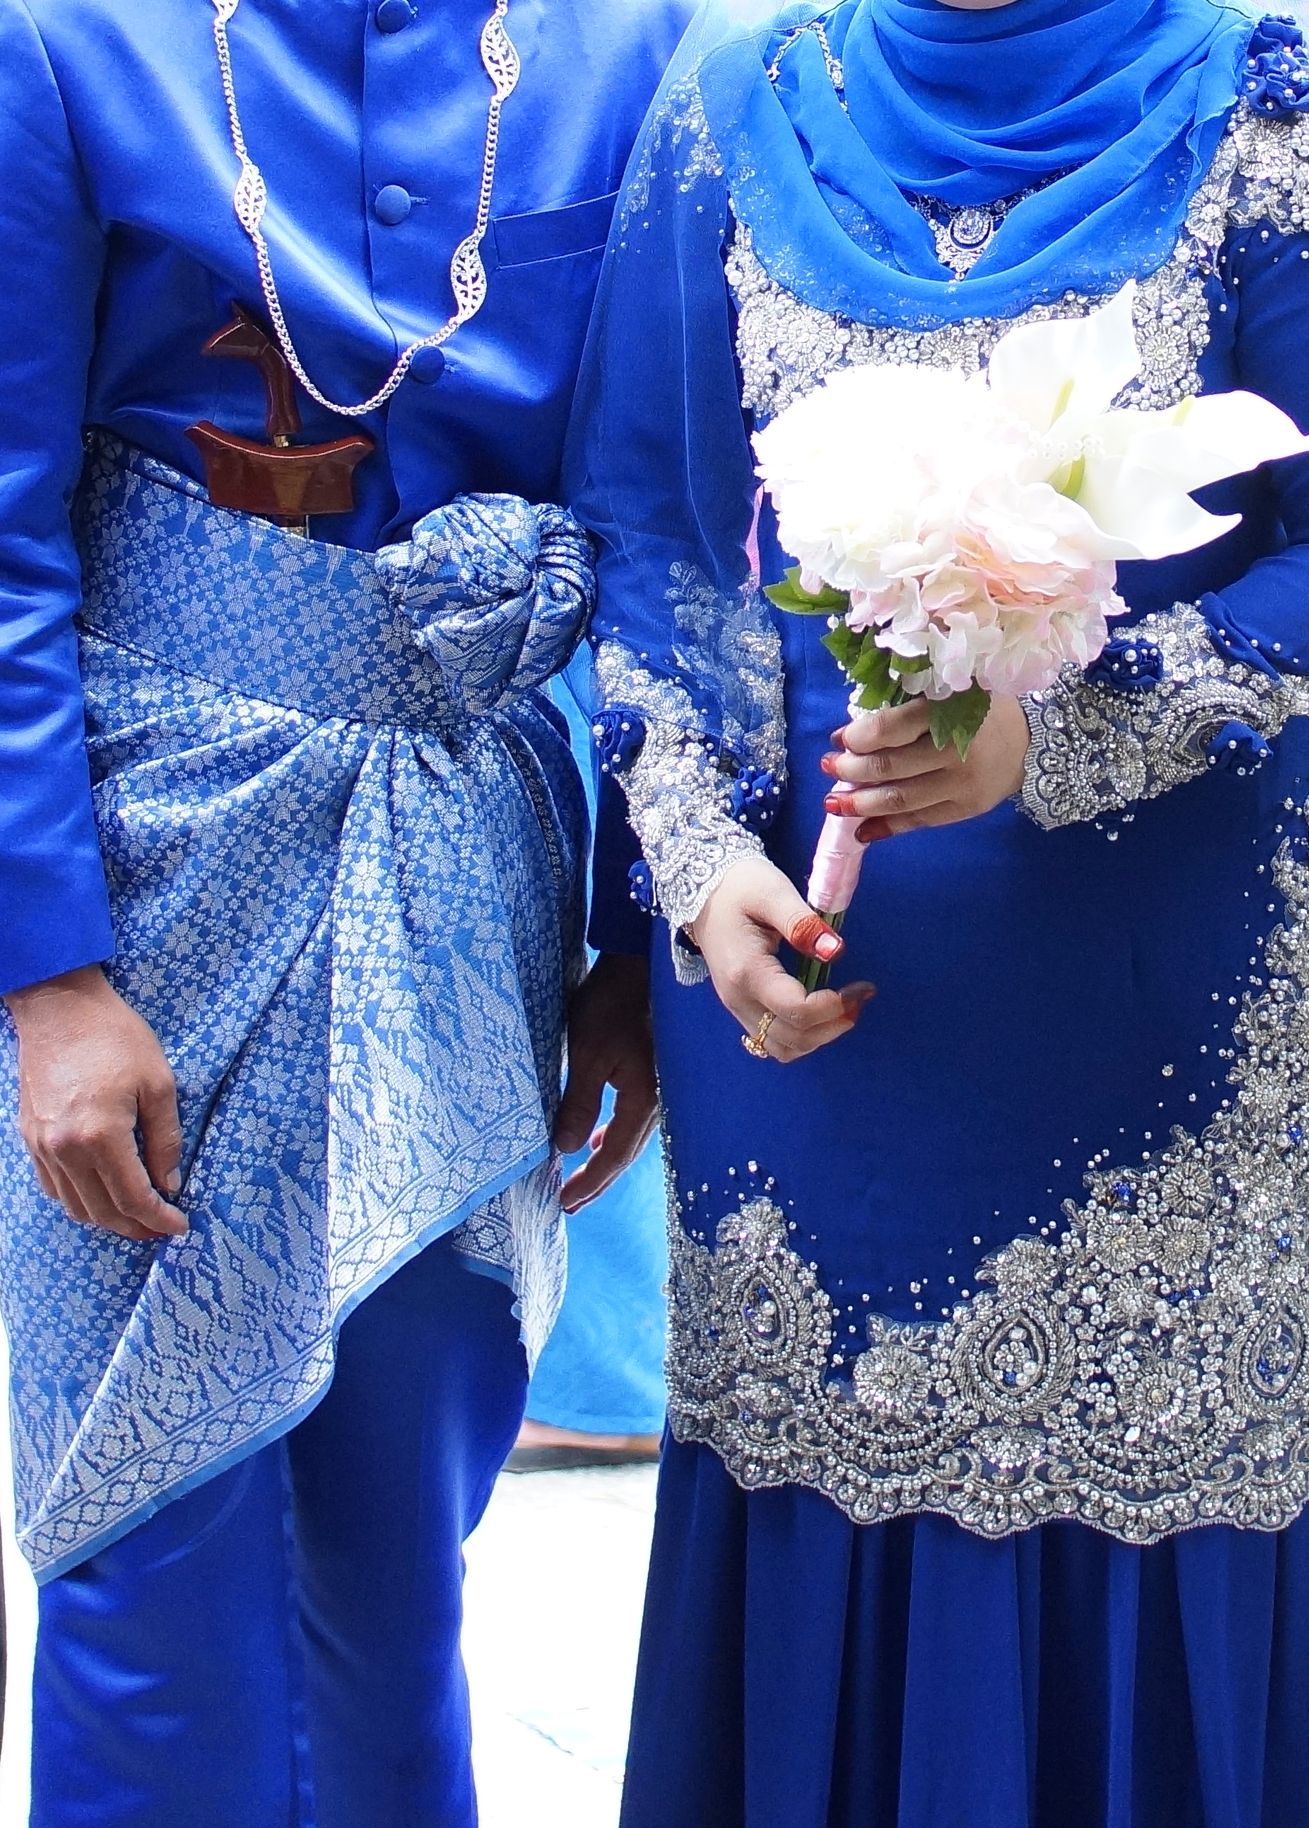 Royal blue - malay wedding dress  Malay wedding dress, Muslim